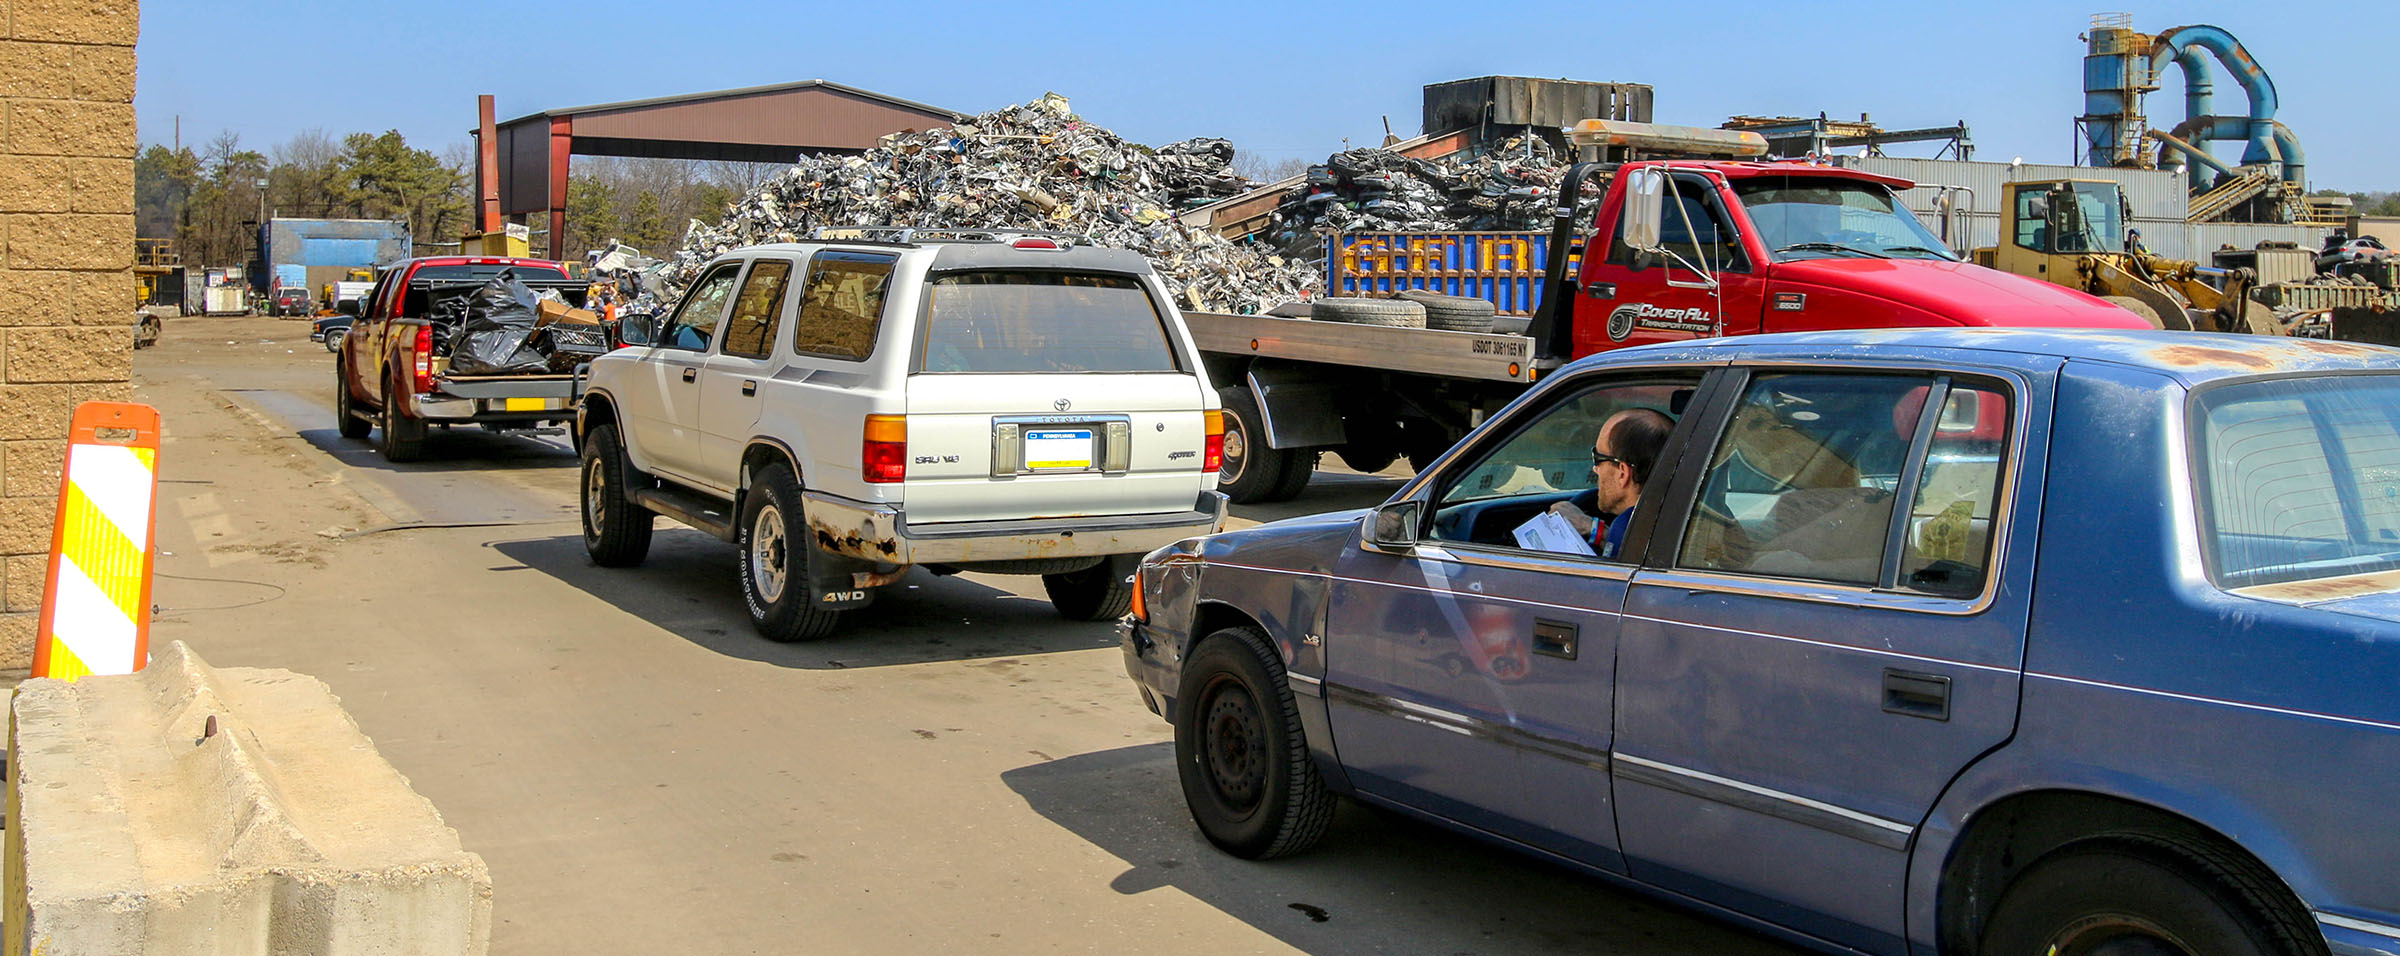 Gershow Recycling Facility Buy Sell Scrap Metal Junk Cars Copper